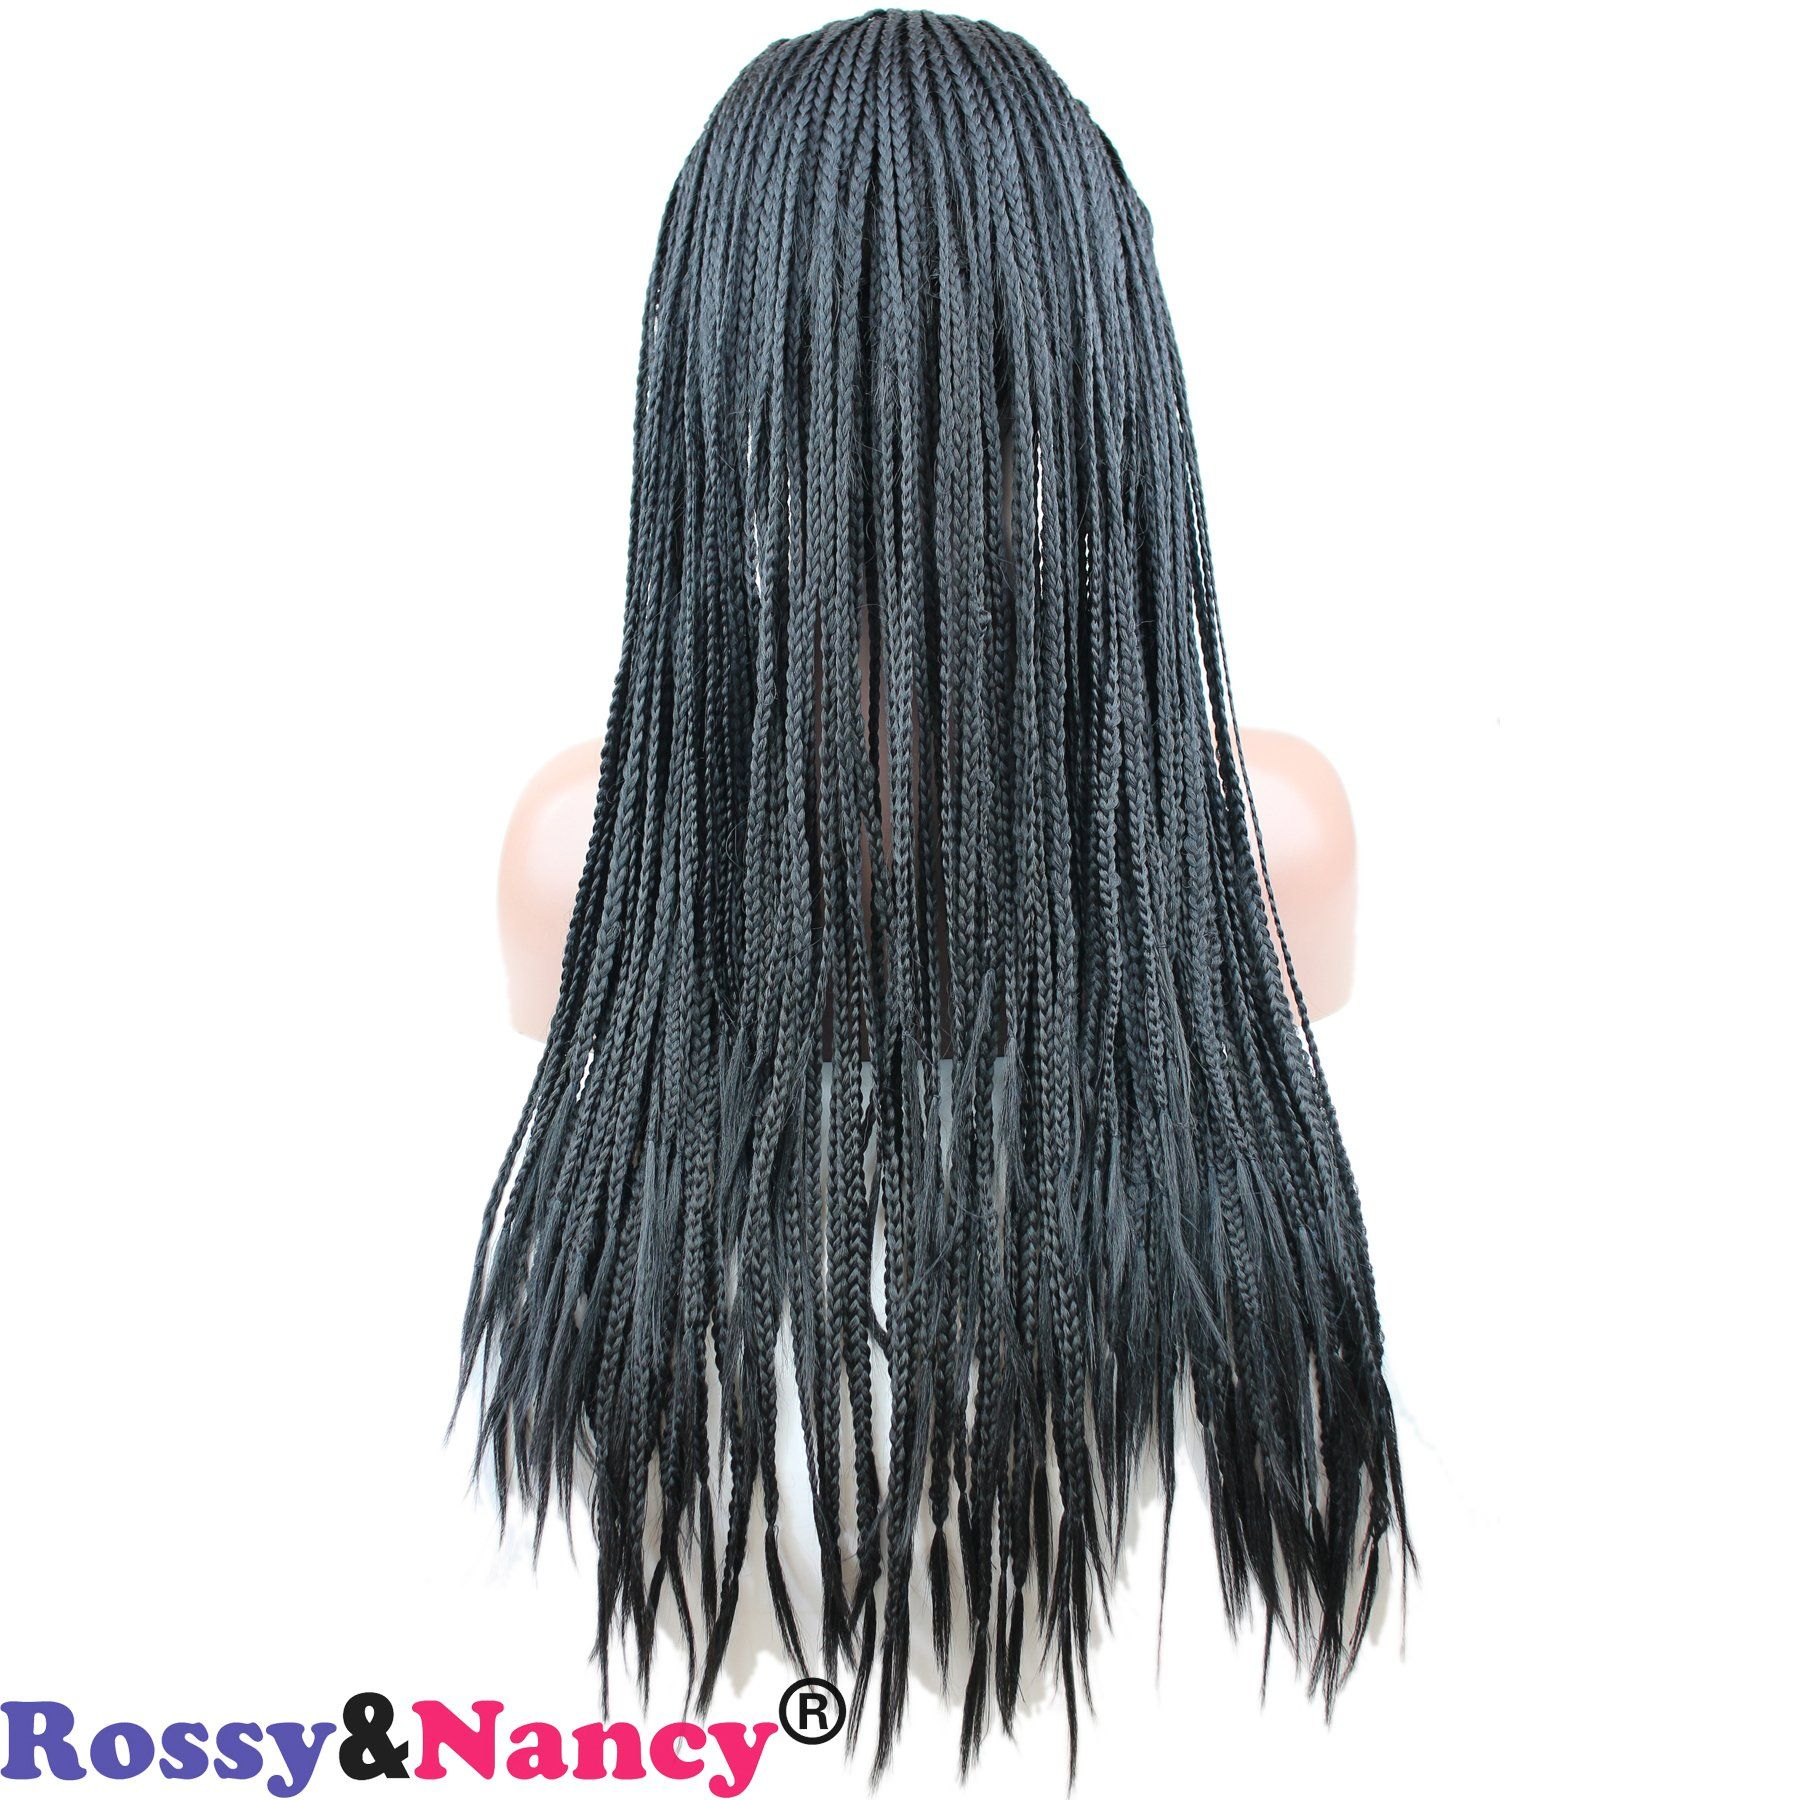 Rossyandnancy cheap synthetic braided hair free part natural black